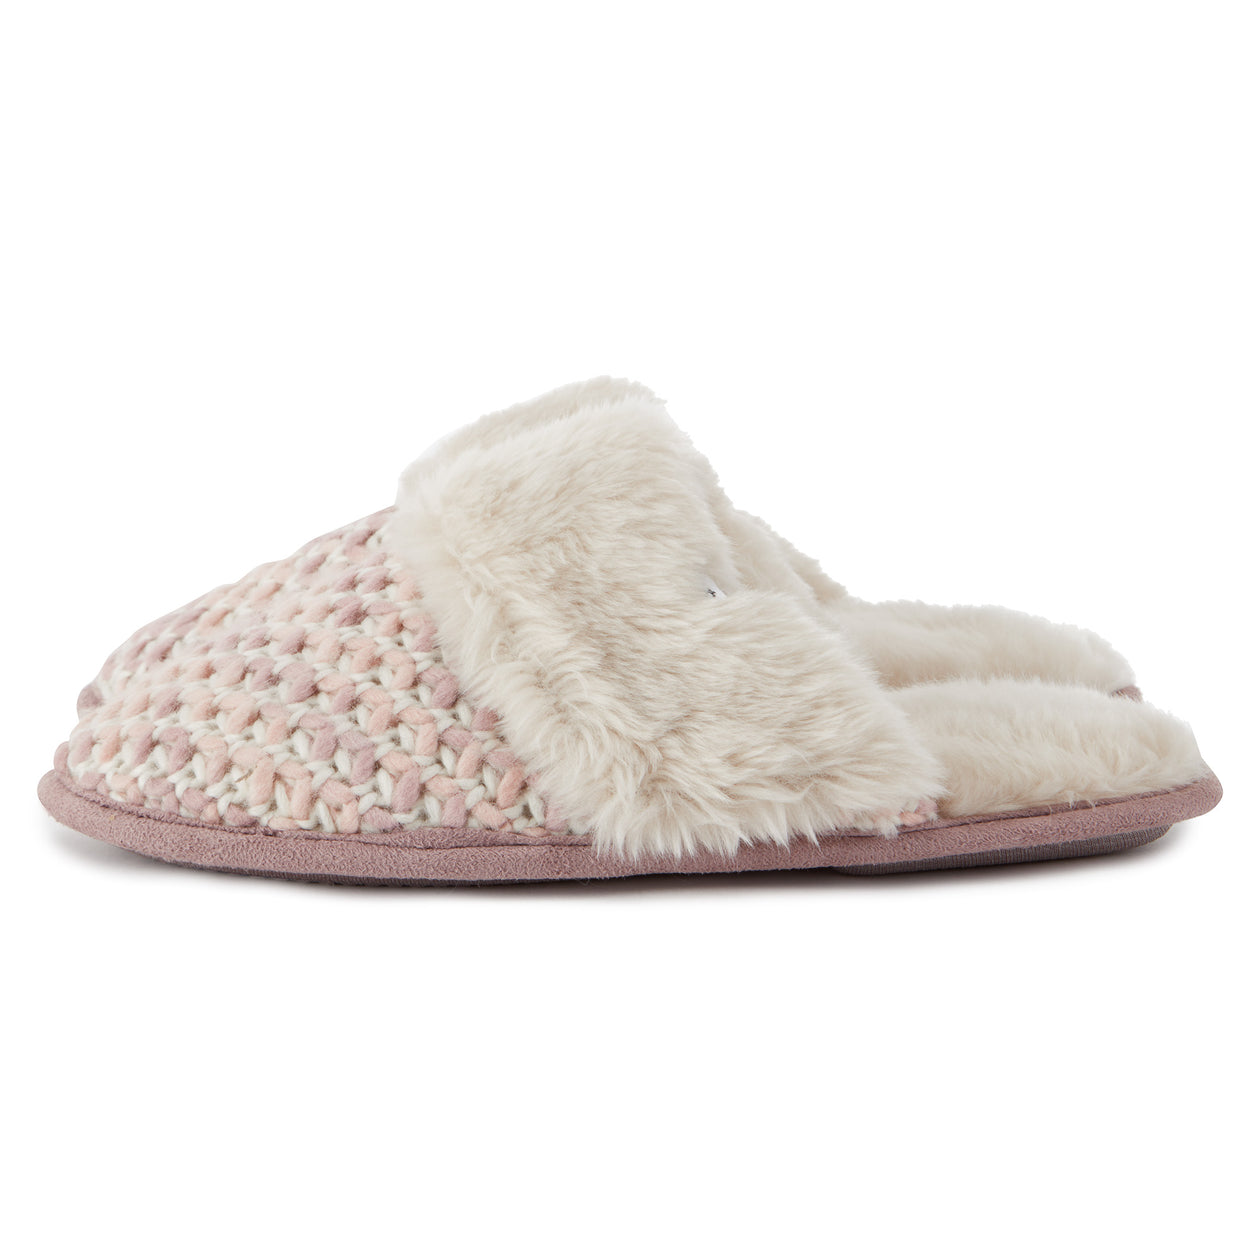 Tunnard Womens Knit Slipper - Rose Pink image 4